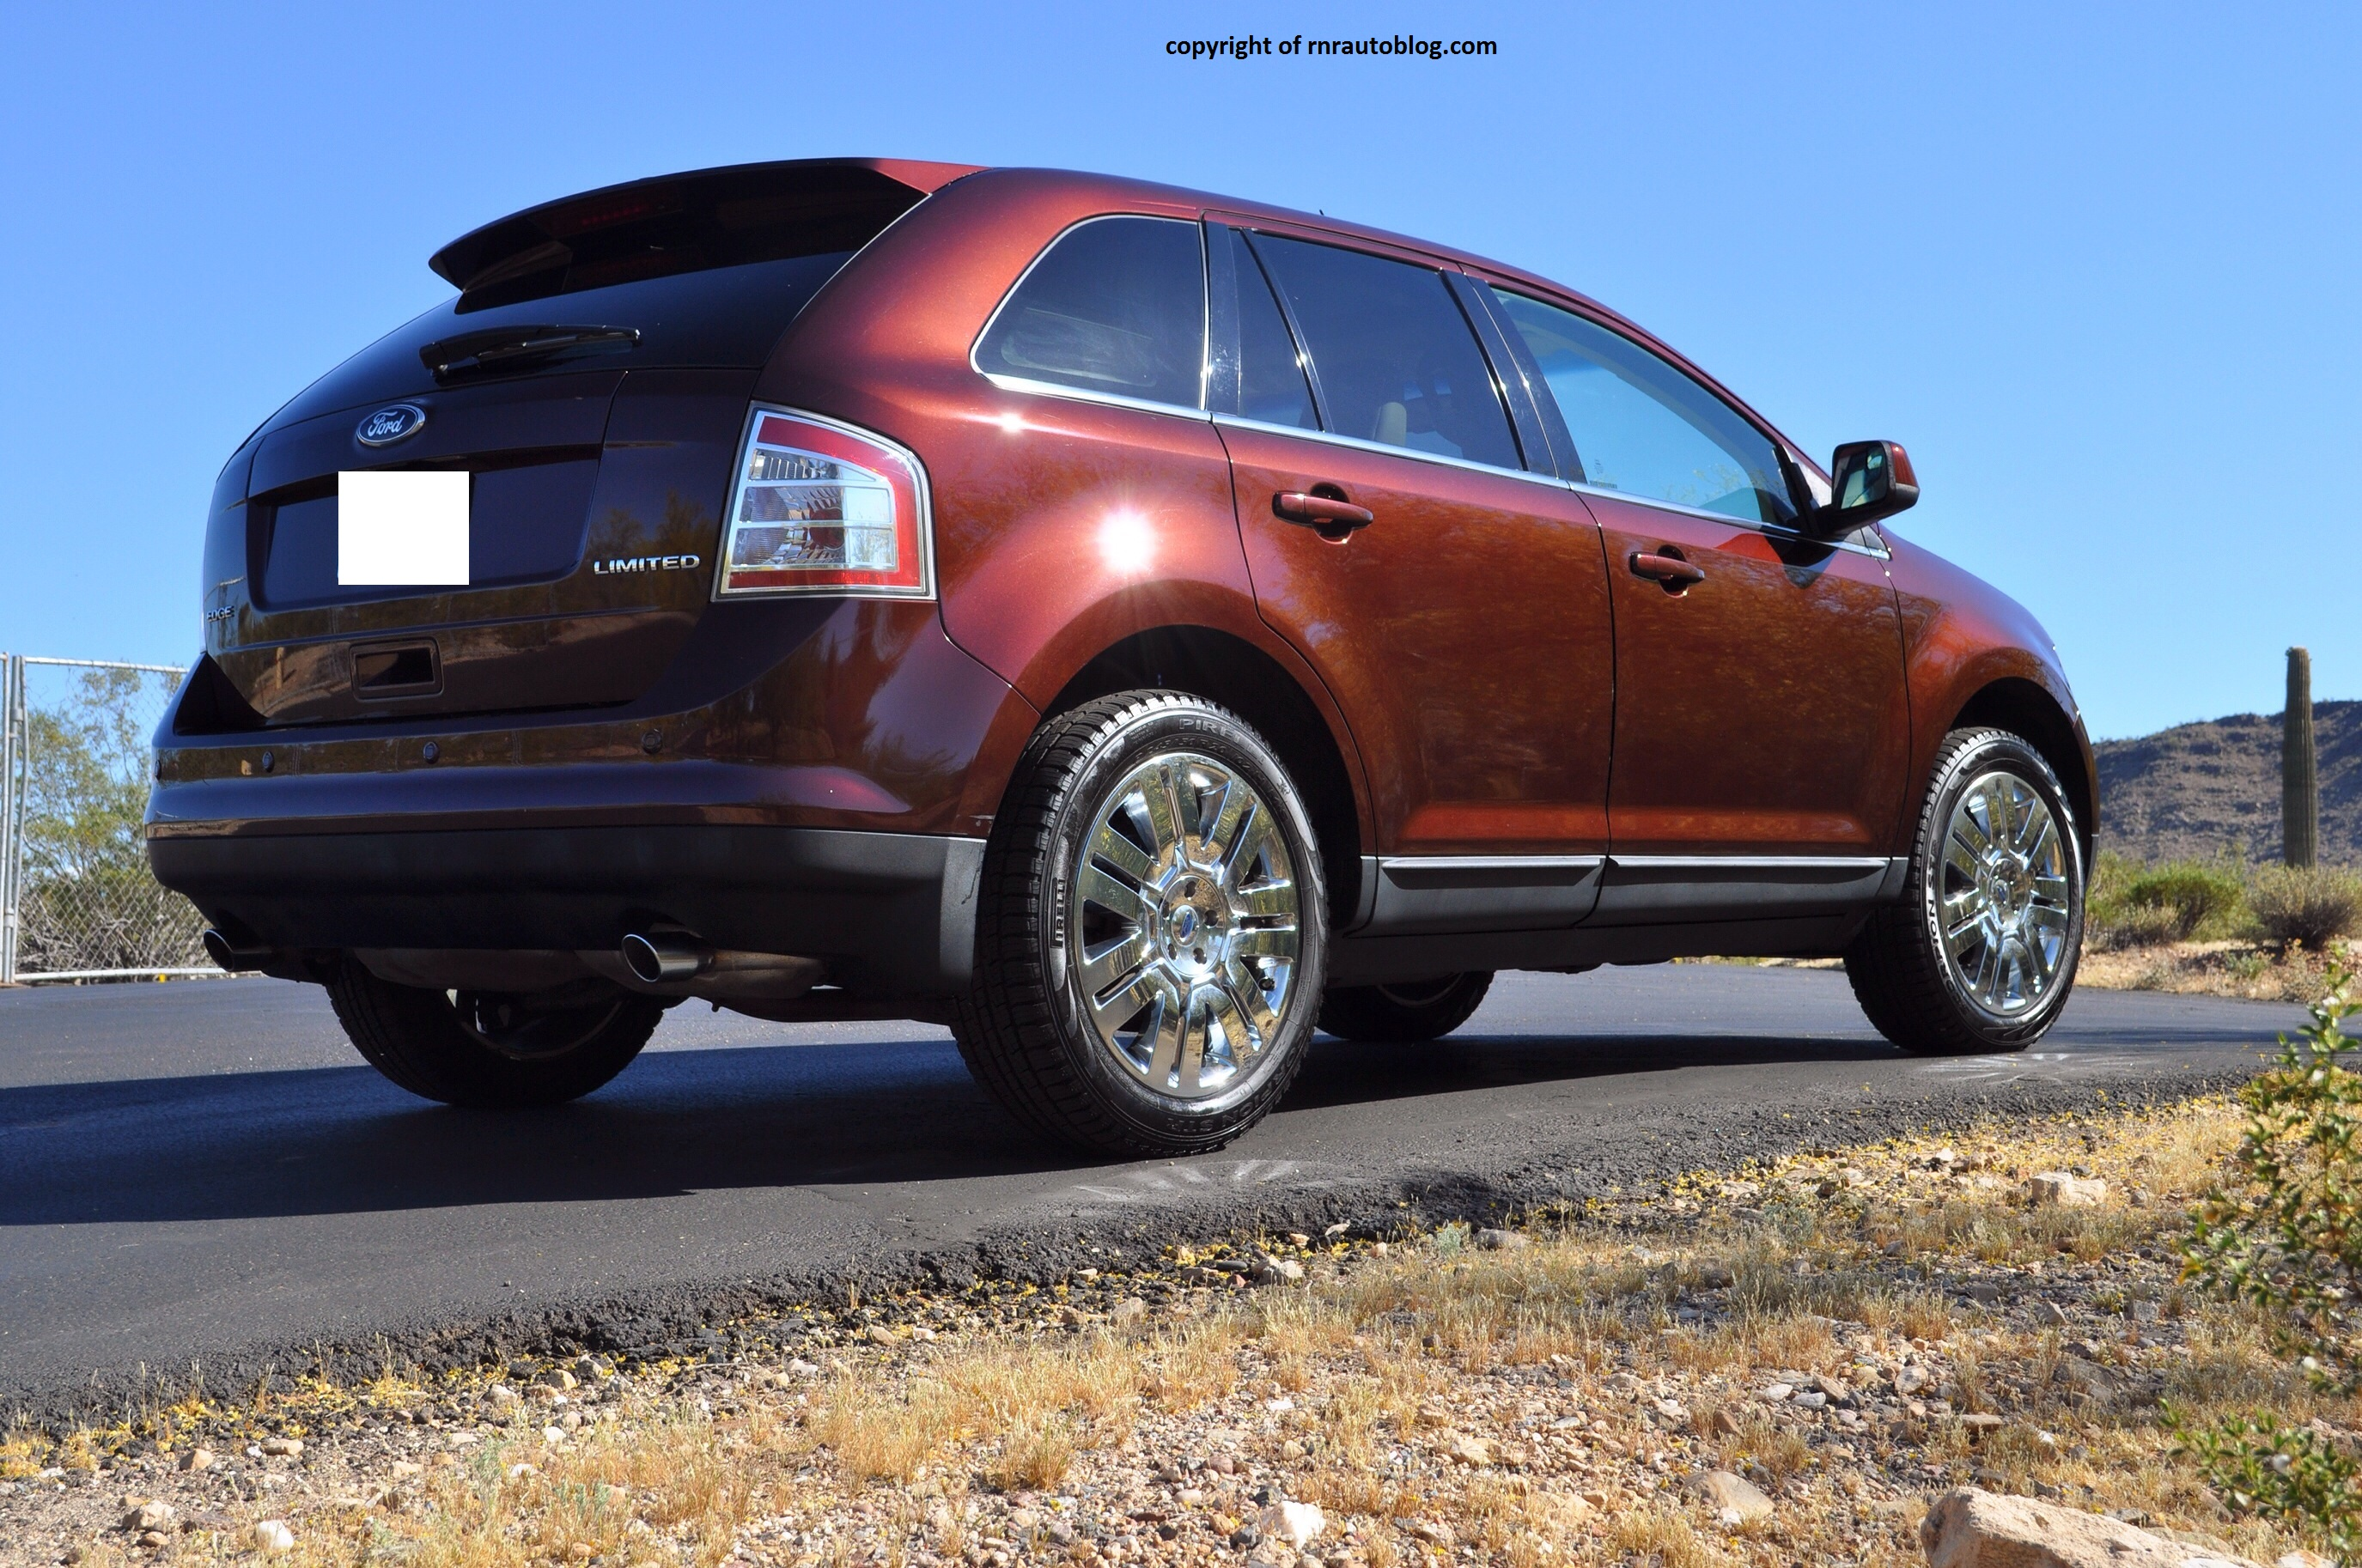 2010 Ford Edge Limited Review Rnr Automotive Blog